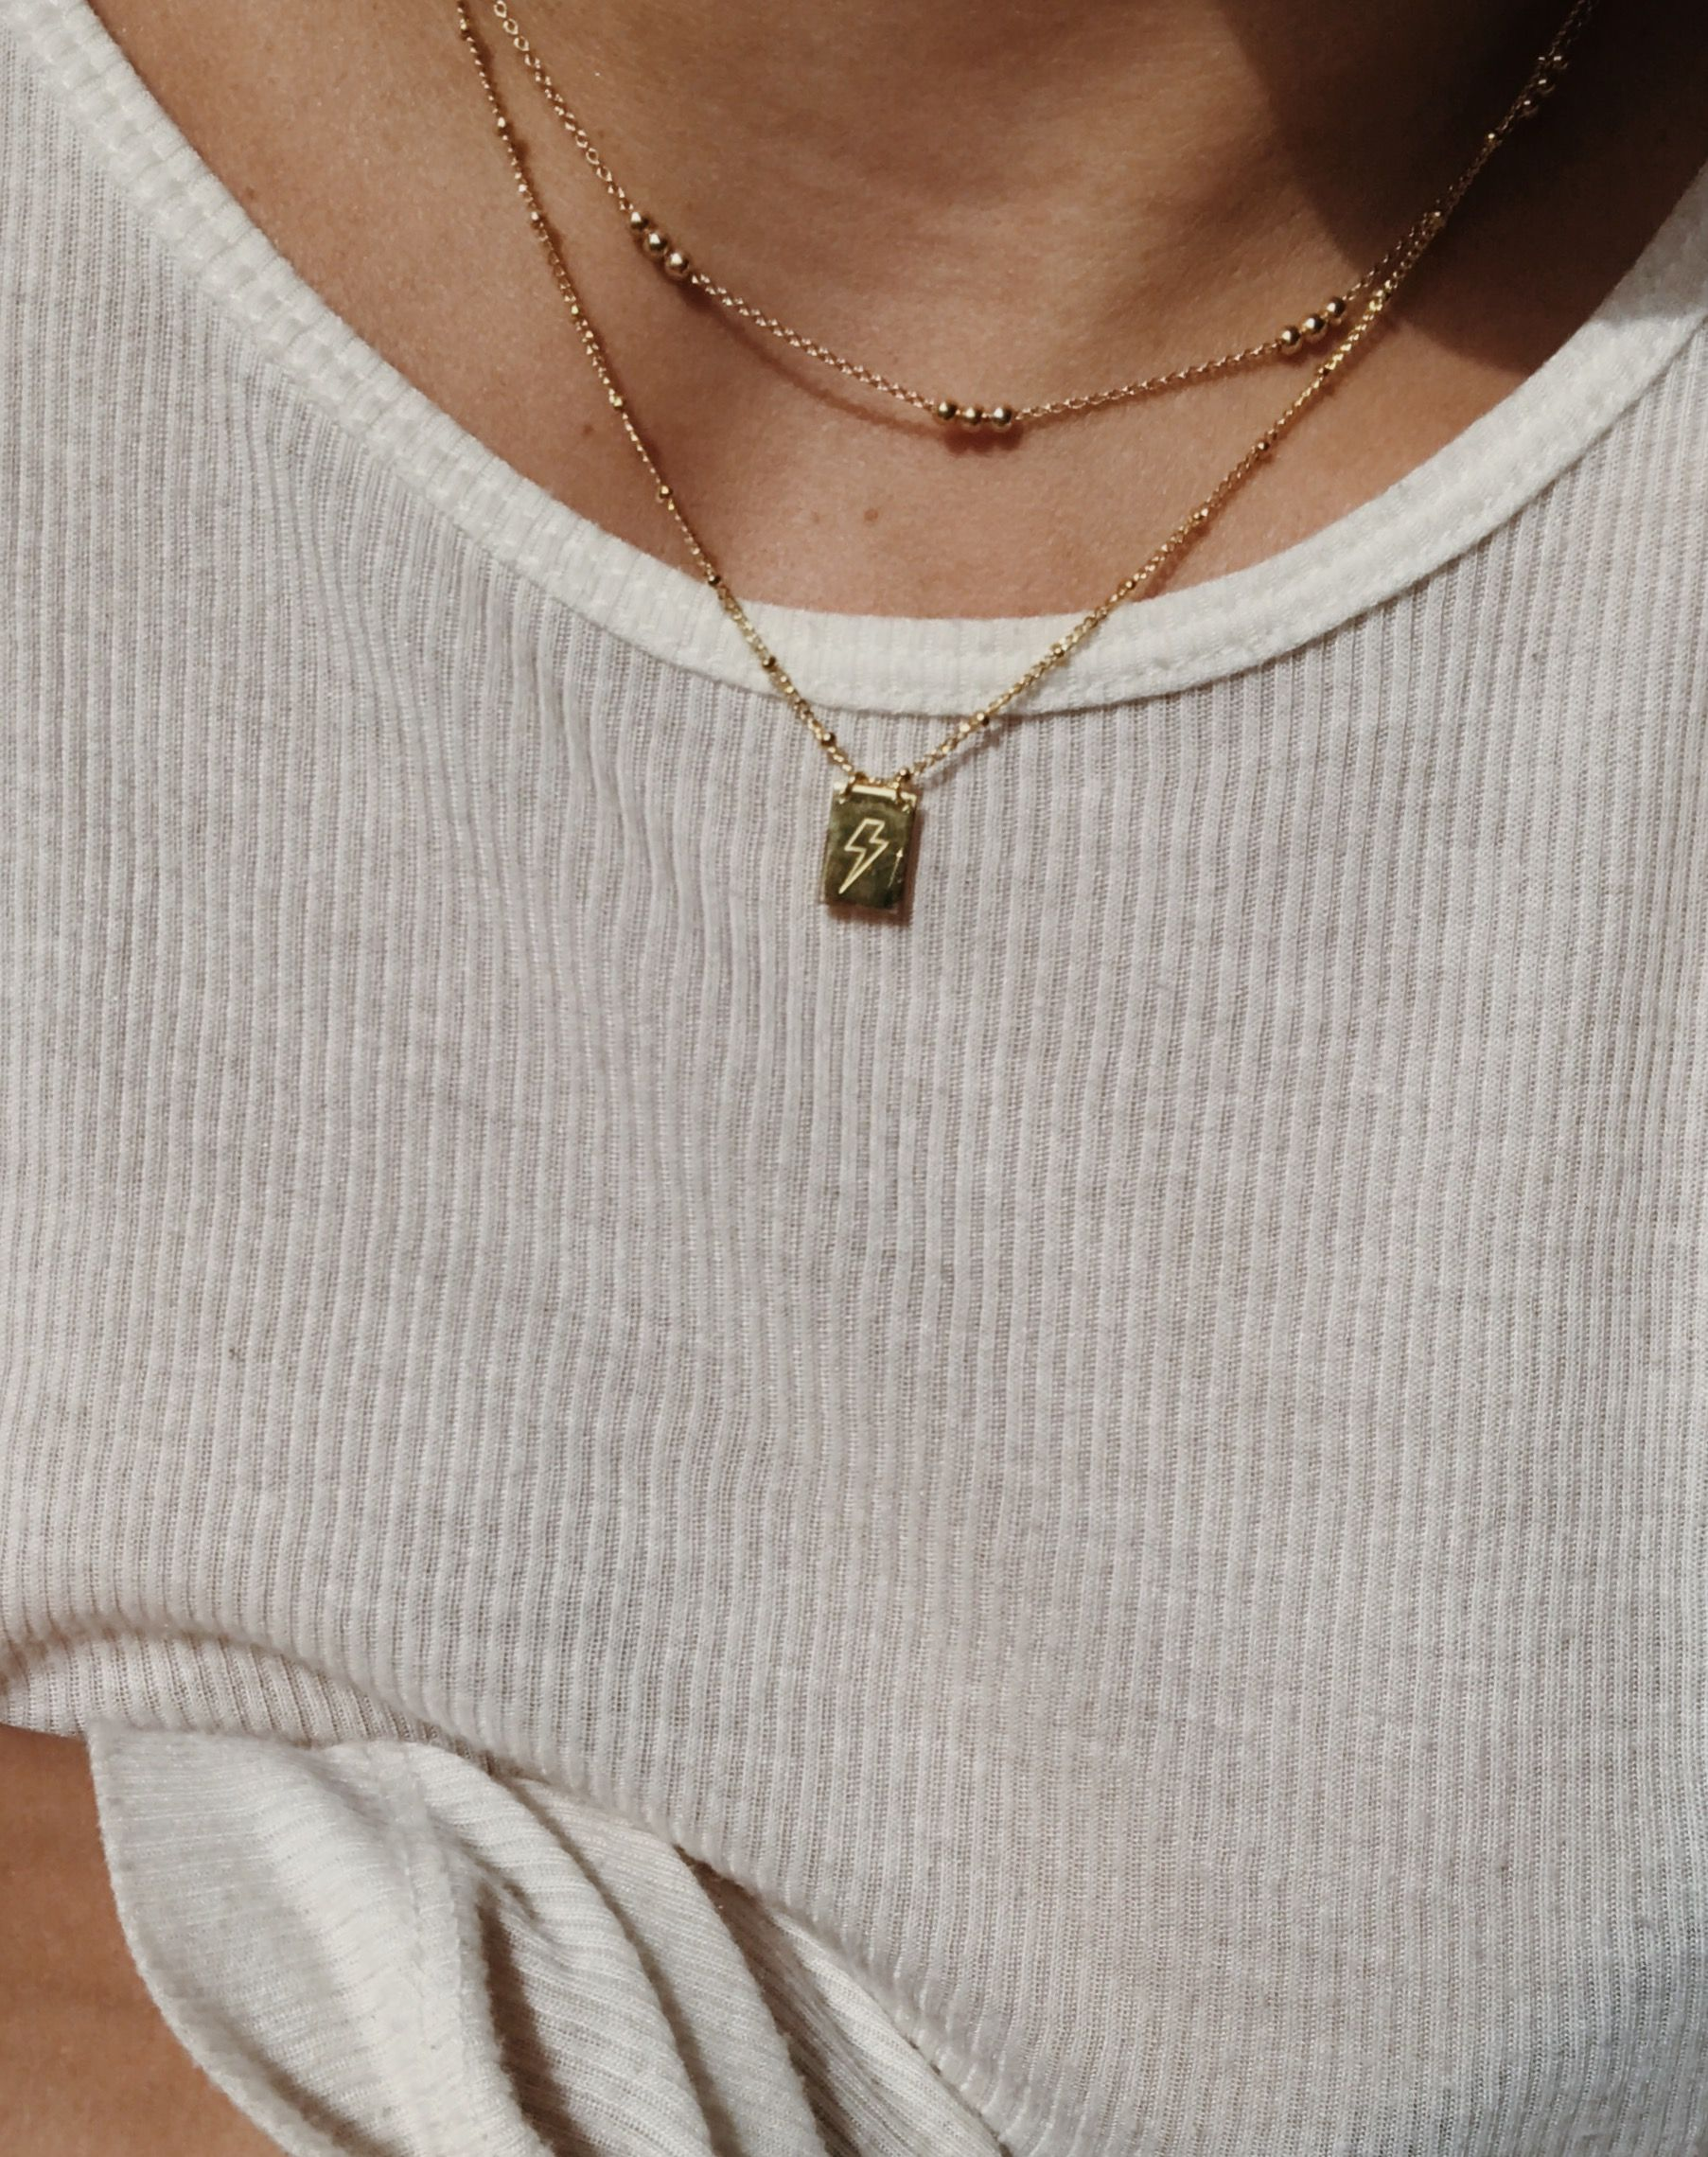 Thunder necklace pretty jewelry pinterest thunder bling and jewel